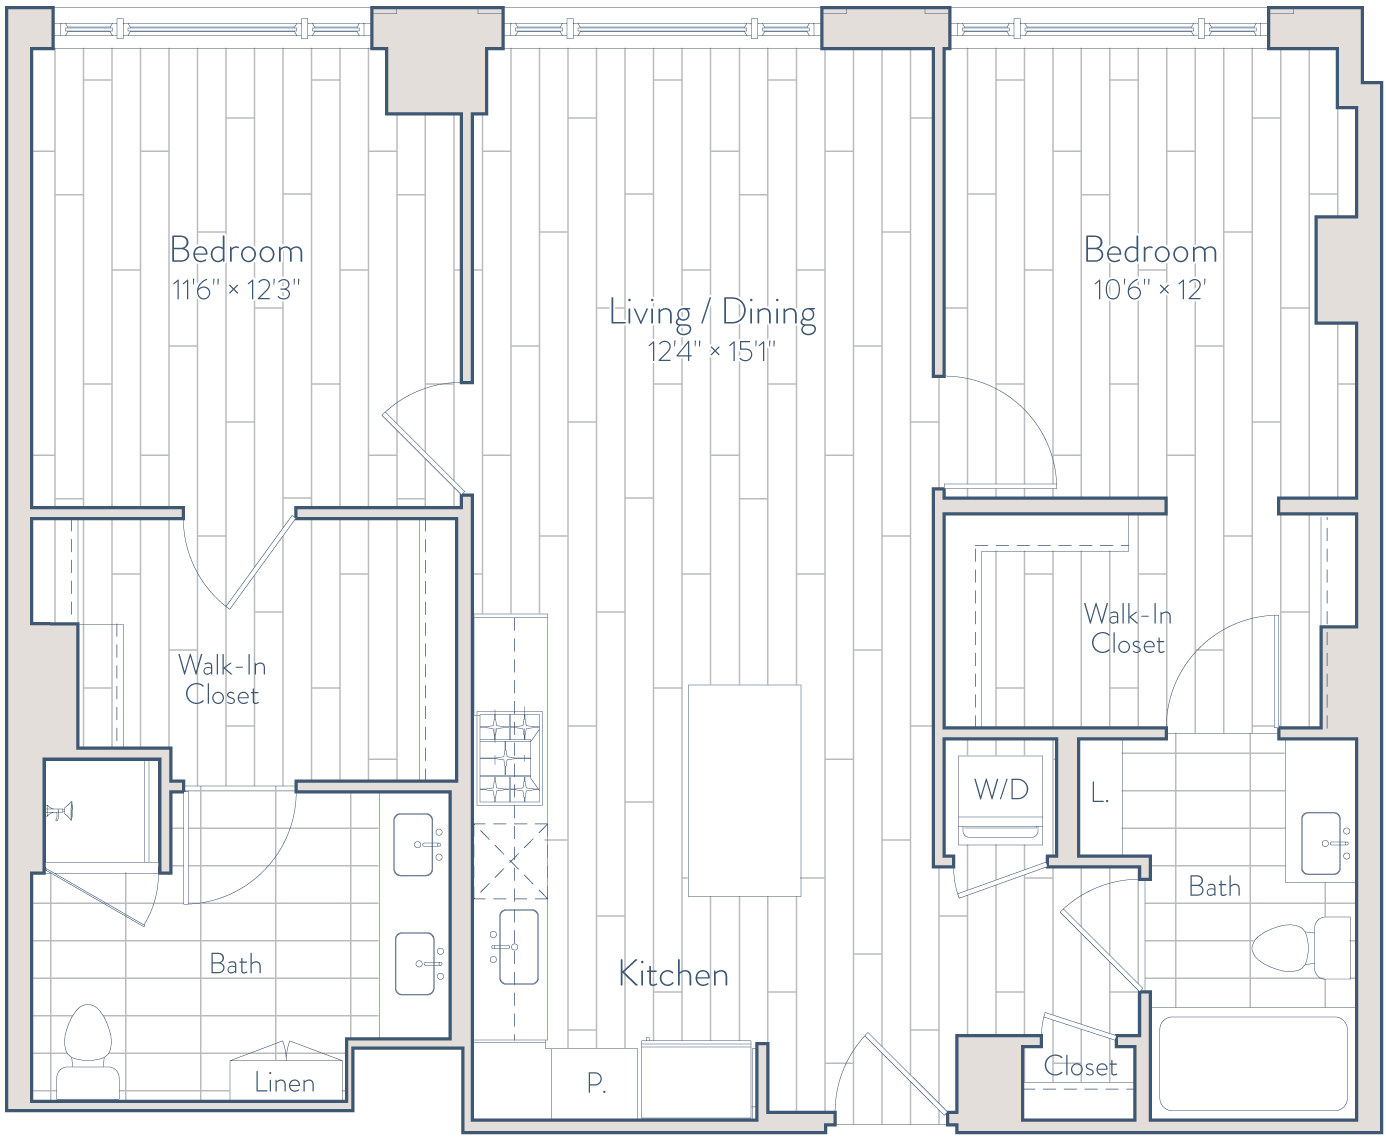 Floor plan of apartment 1032